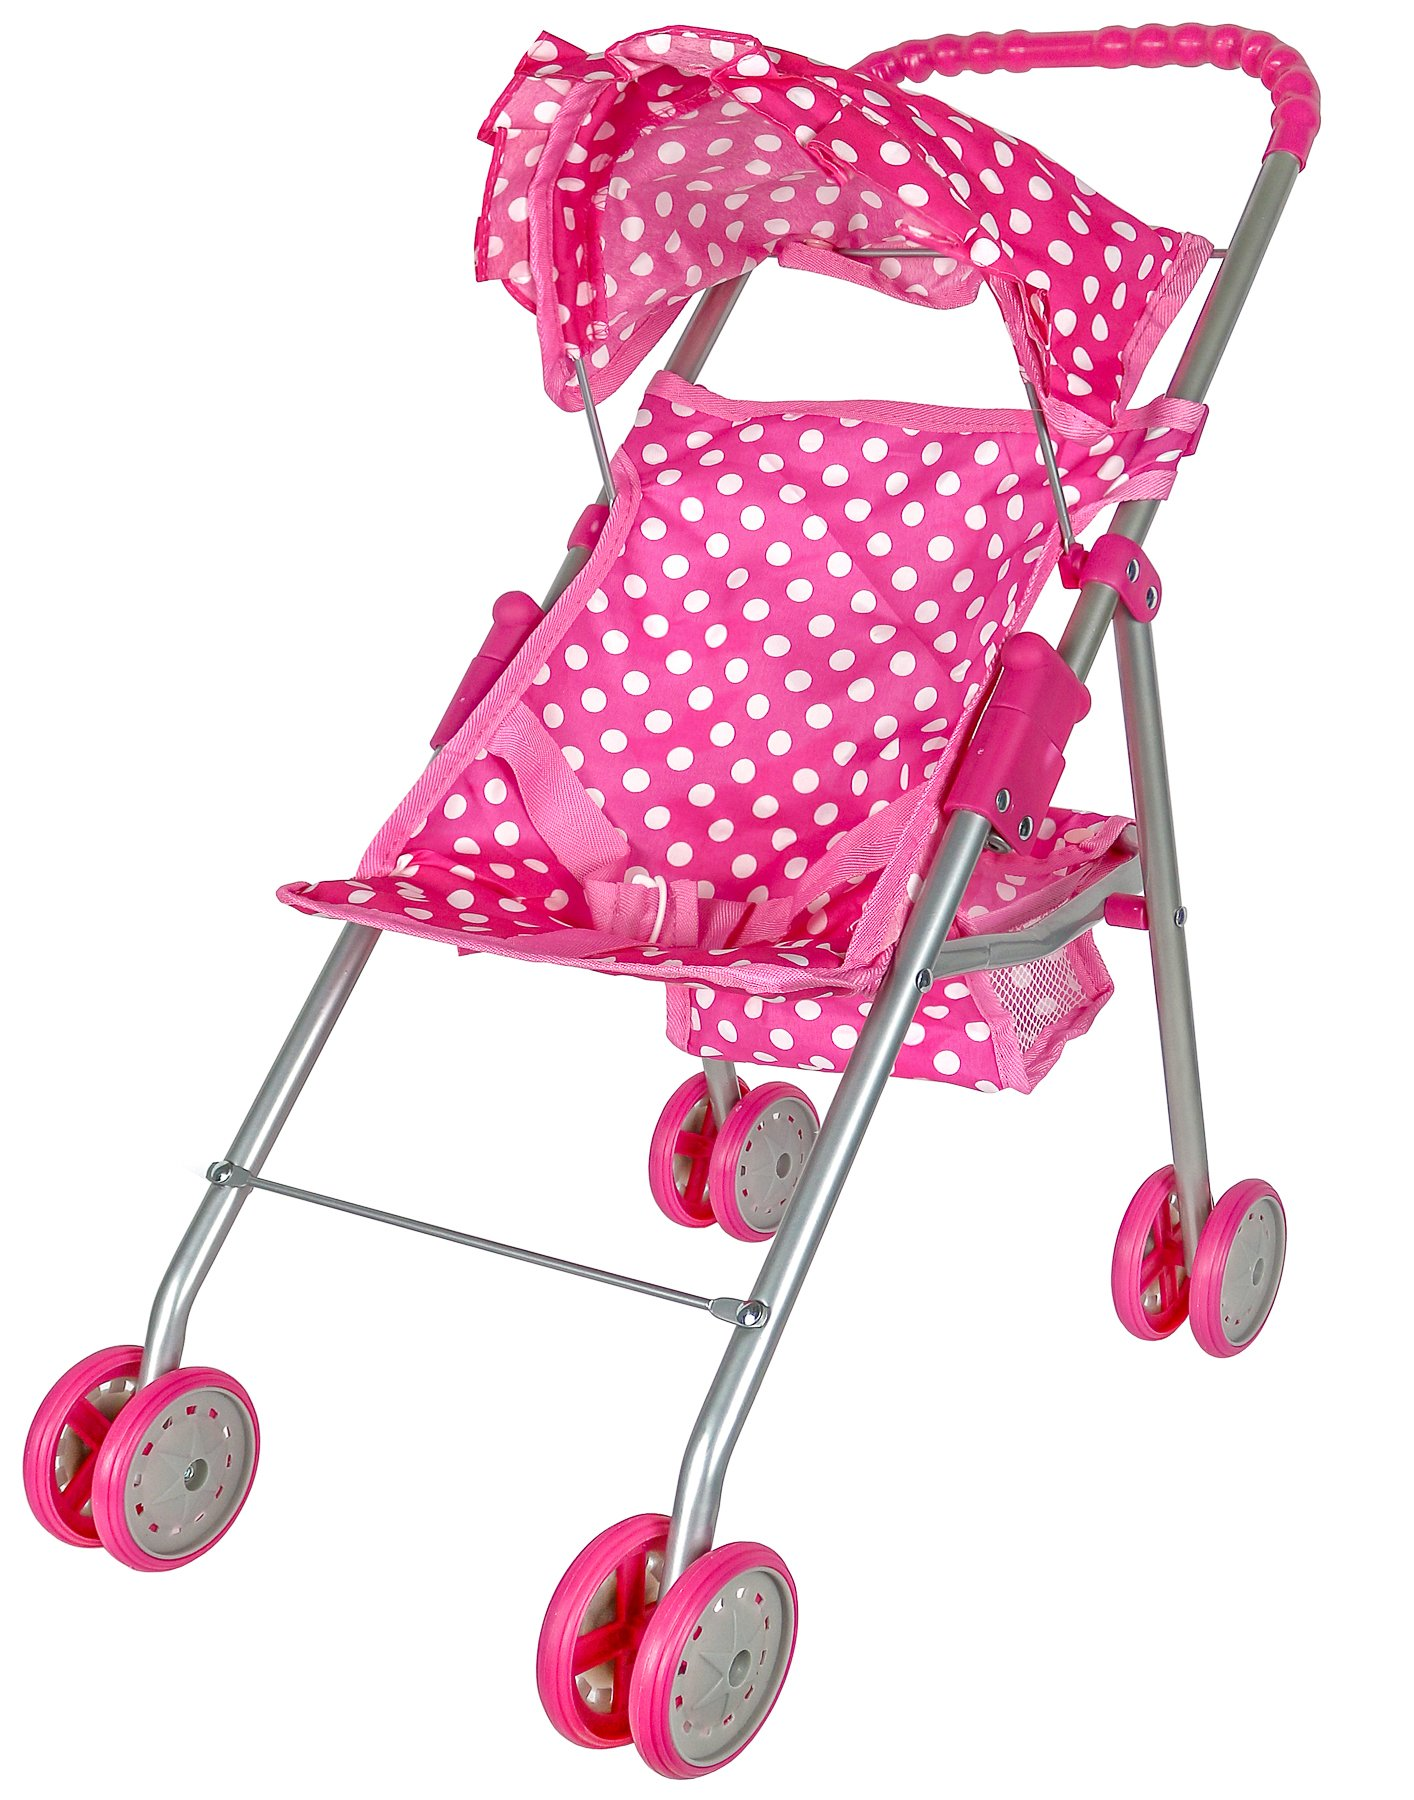 Precious Toys Pink & White Polka Dots Foldable Doll Stroller With Hood